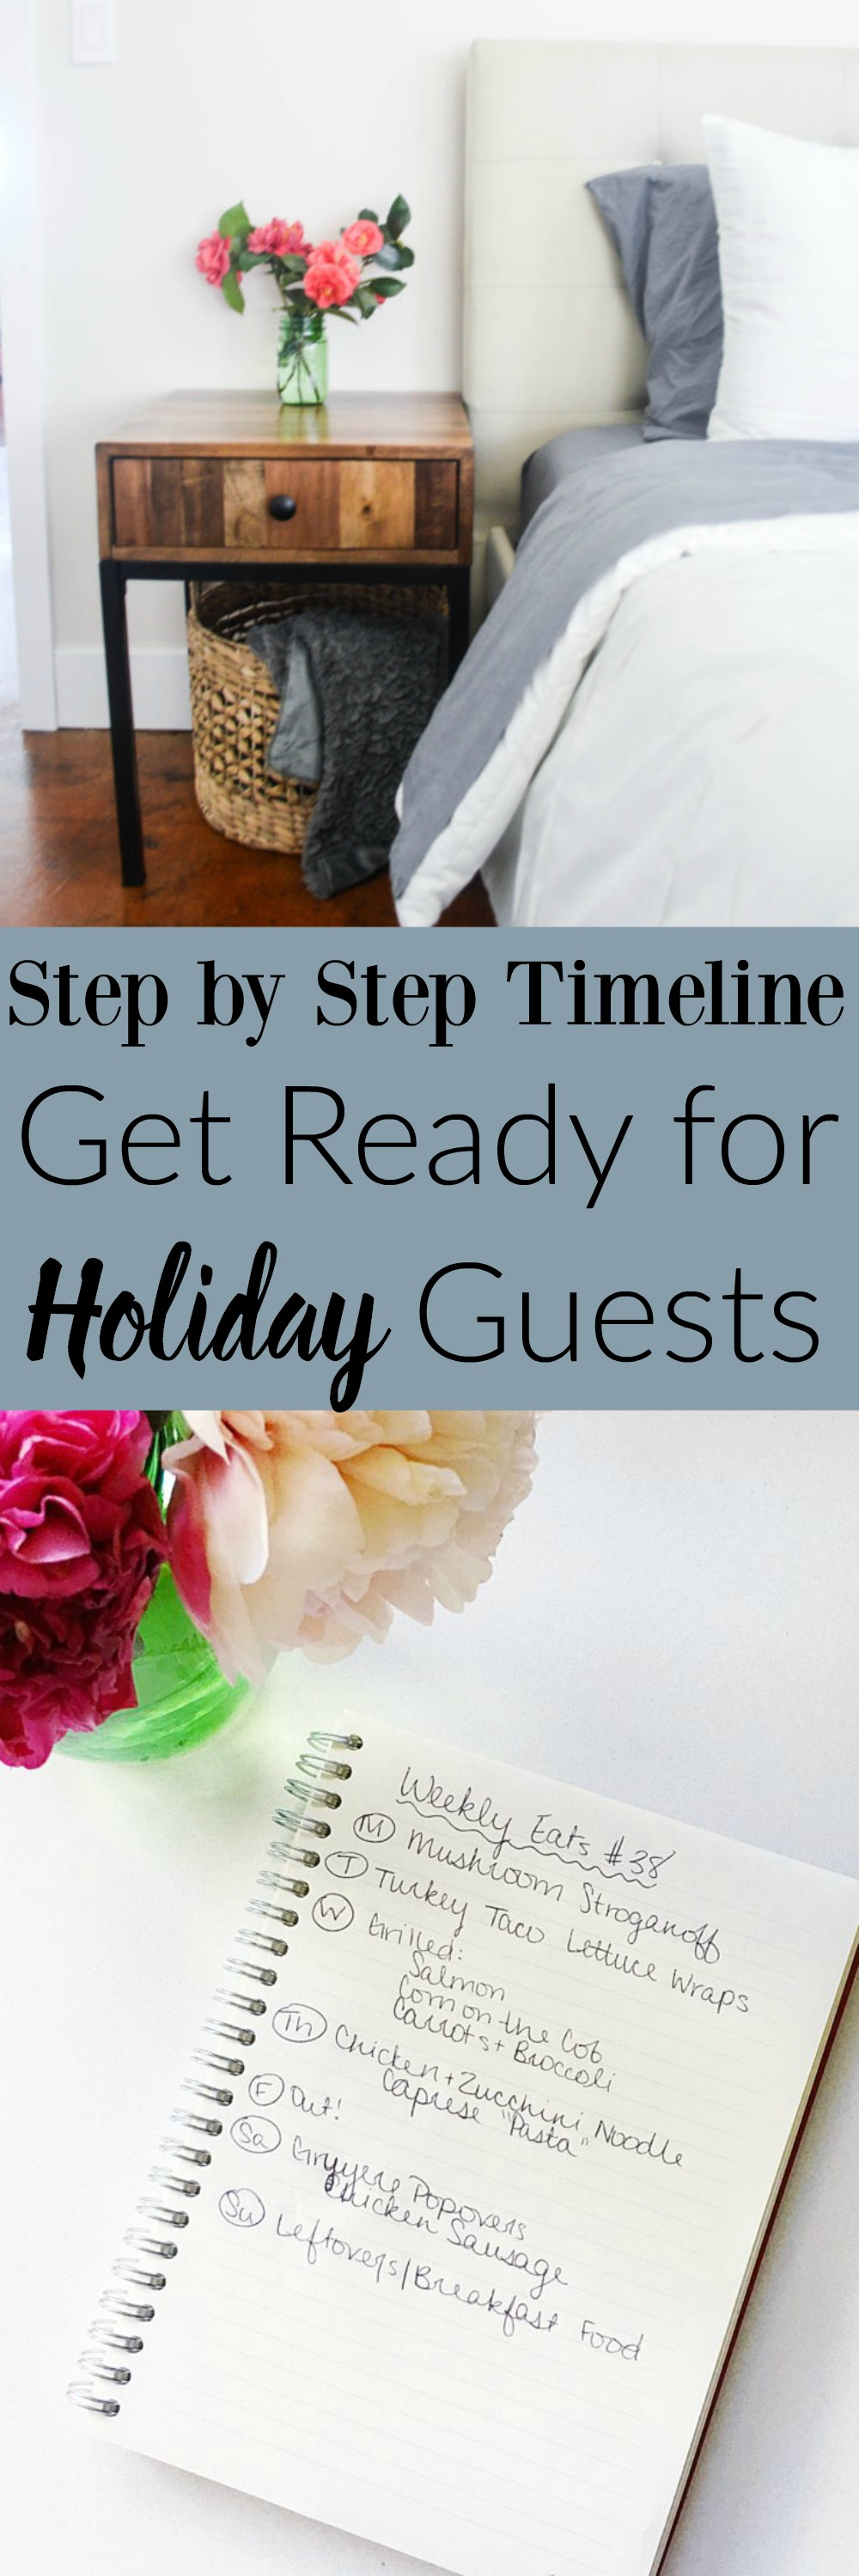 Step by Step Timeline to Get Ready for Holiday Guests